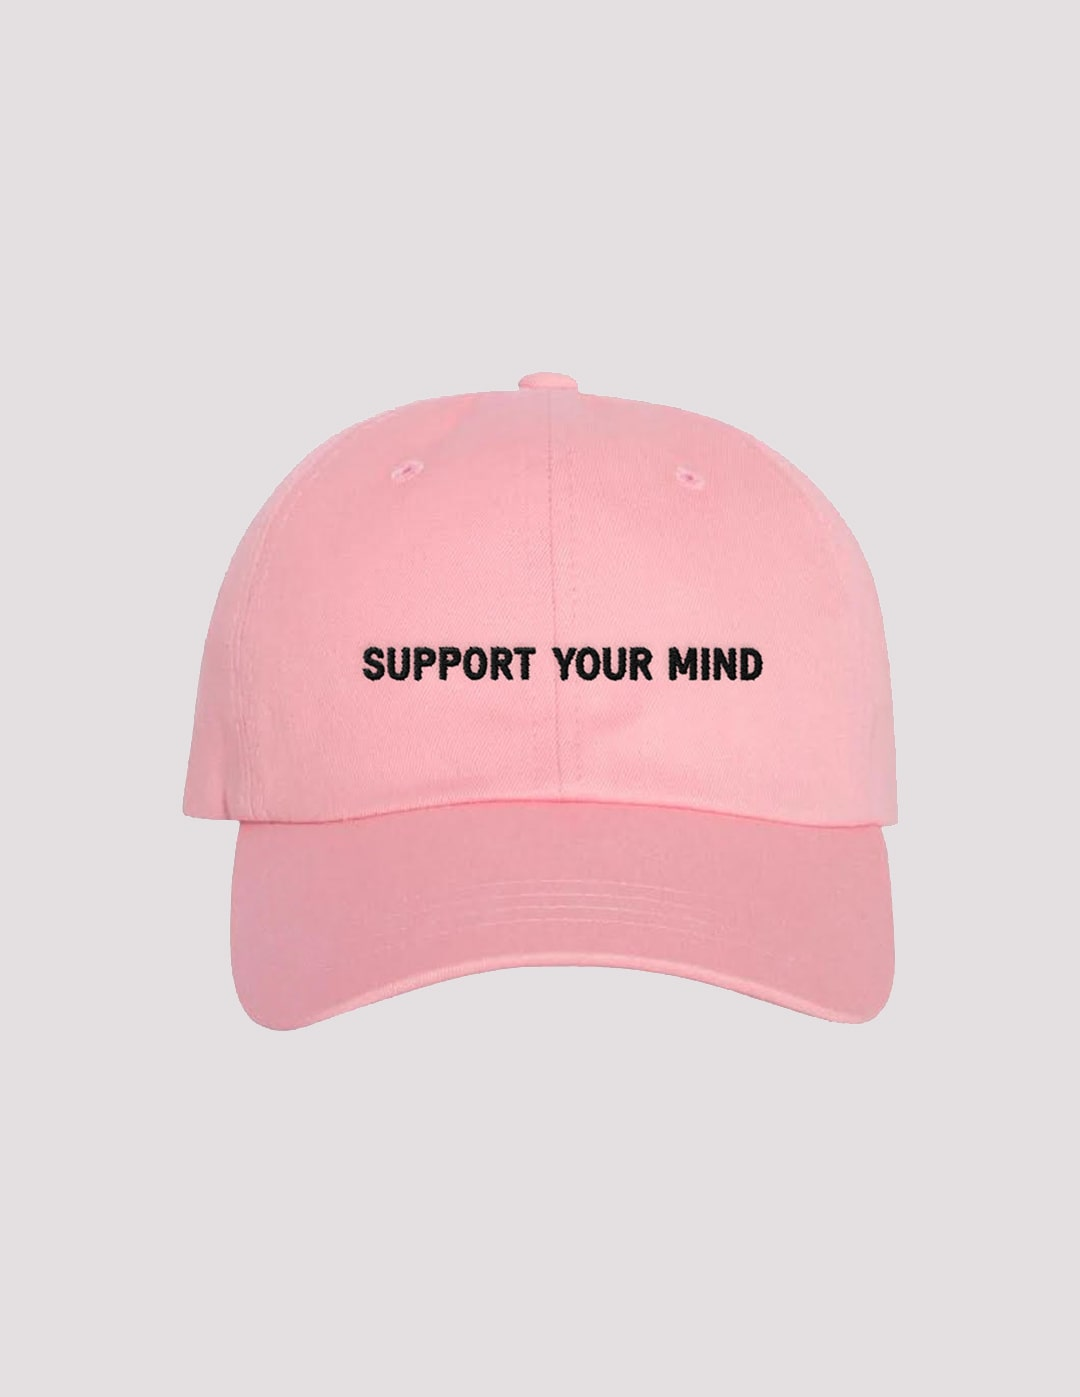 Support Your Mind Cap